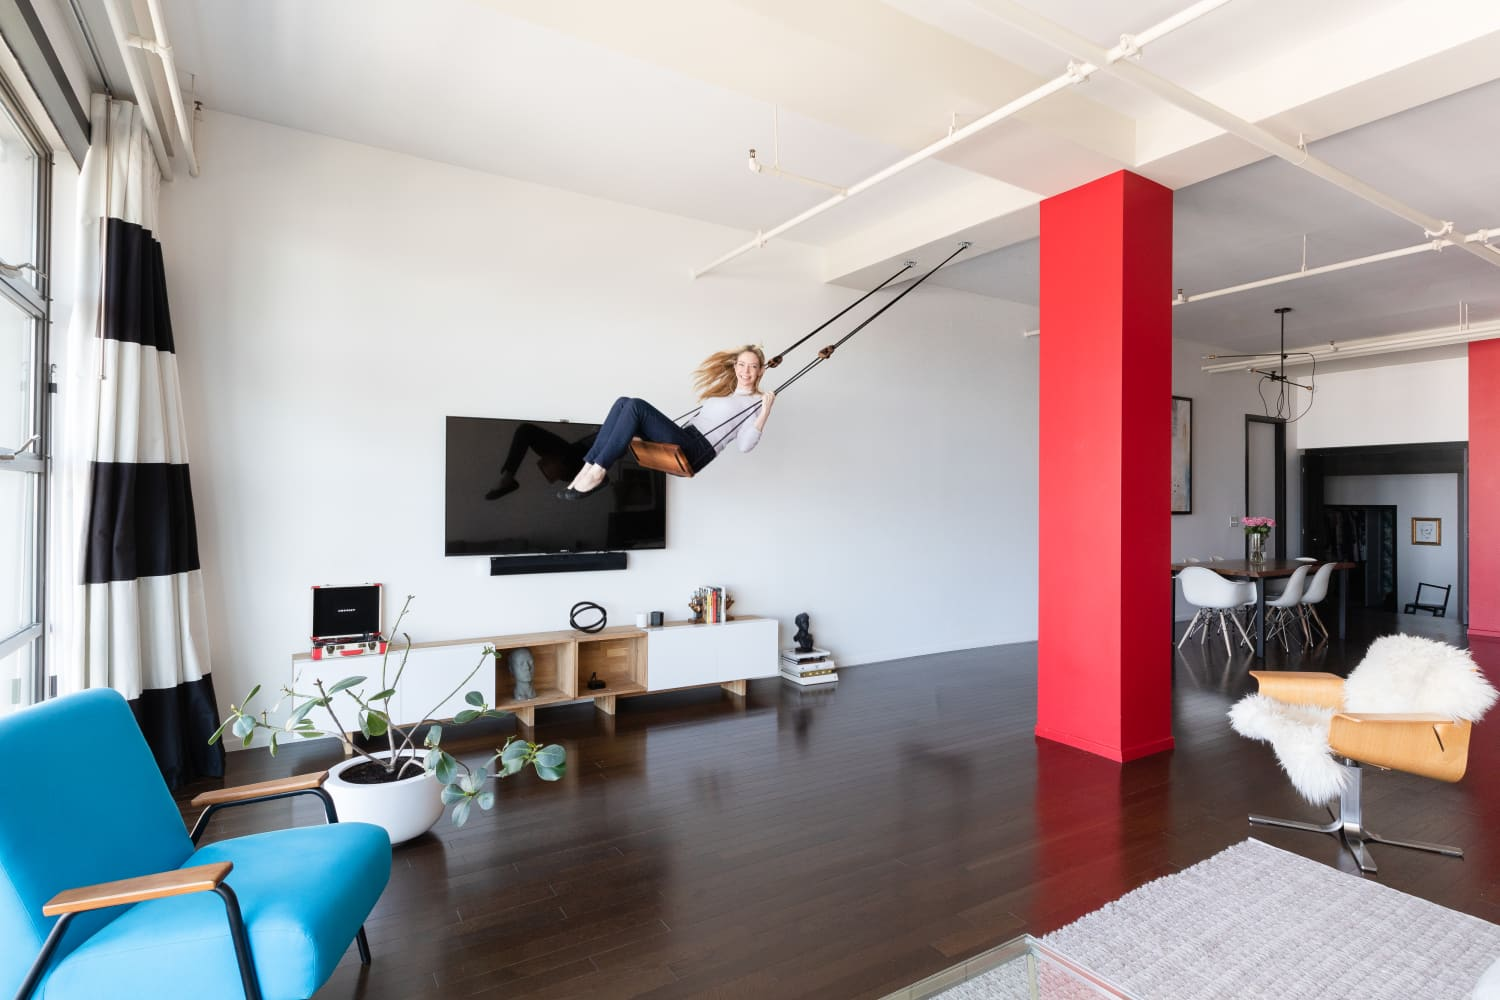 Actress Riki Lindhome's LA Loft Has Style, Stripes, and a Swing!